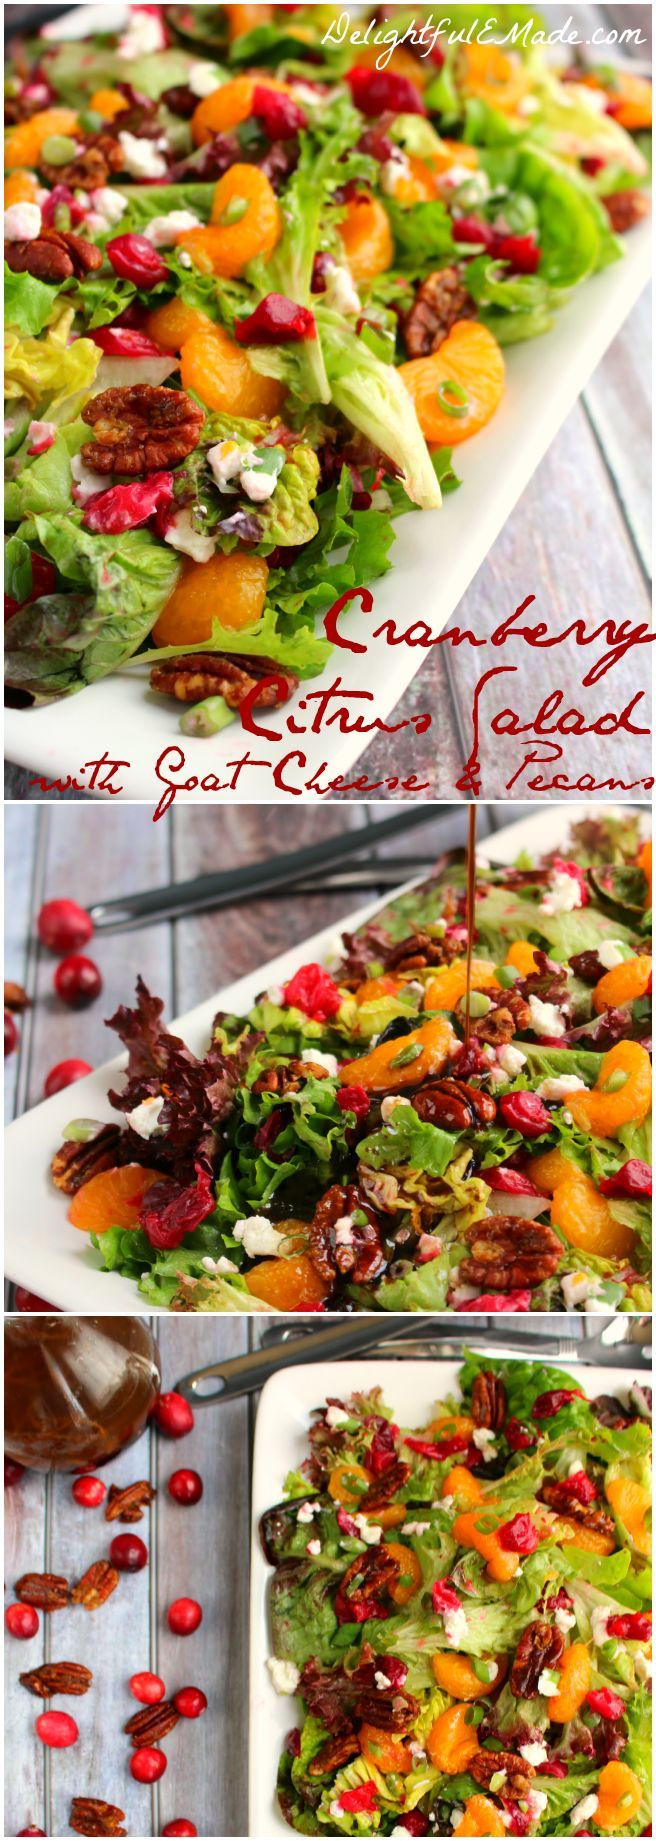 The perfect side for your holiday dinner, this Cranberry Citrus Salad with Goat Cheese Crumbles and sweet Brown Sugar Pecans is flavorful and delicious!